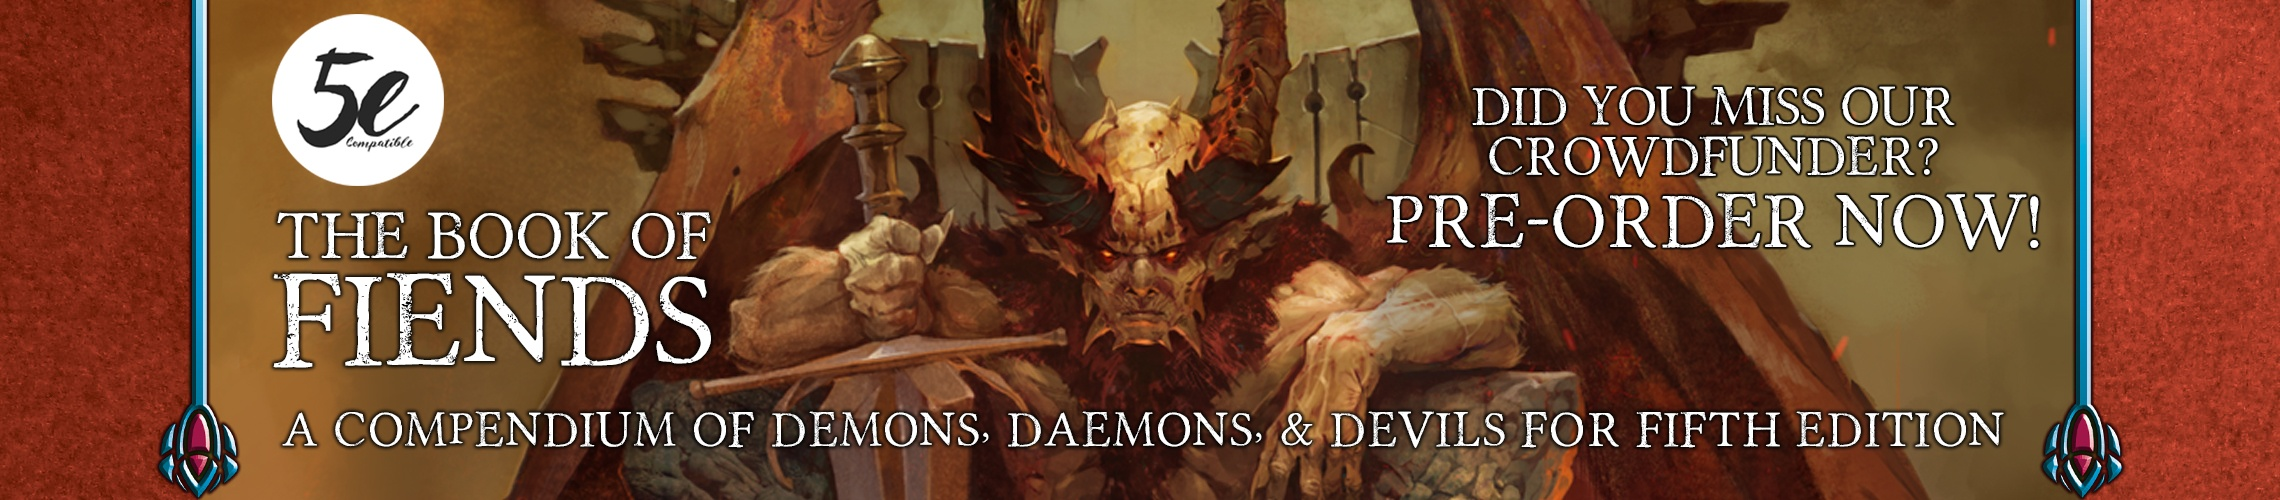 The Book of Fiends 5e: Missed the crowdfunder? Pre-order today!